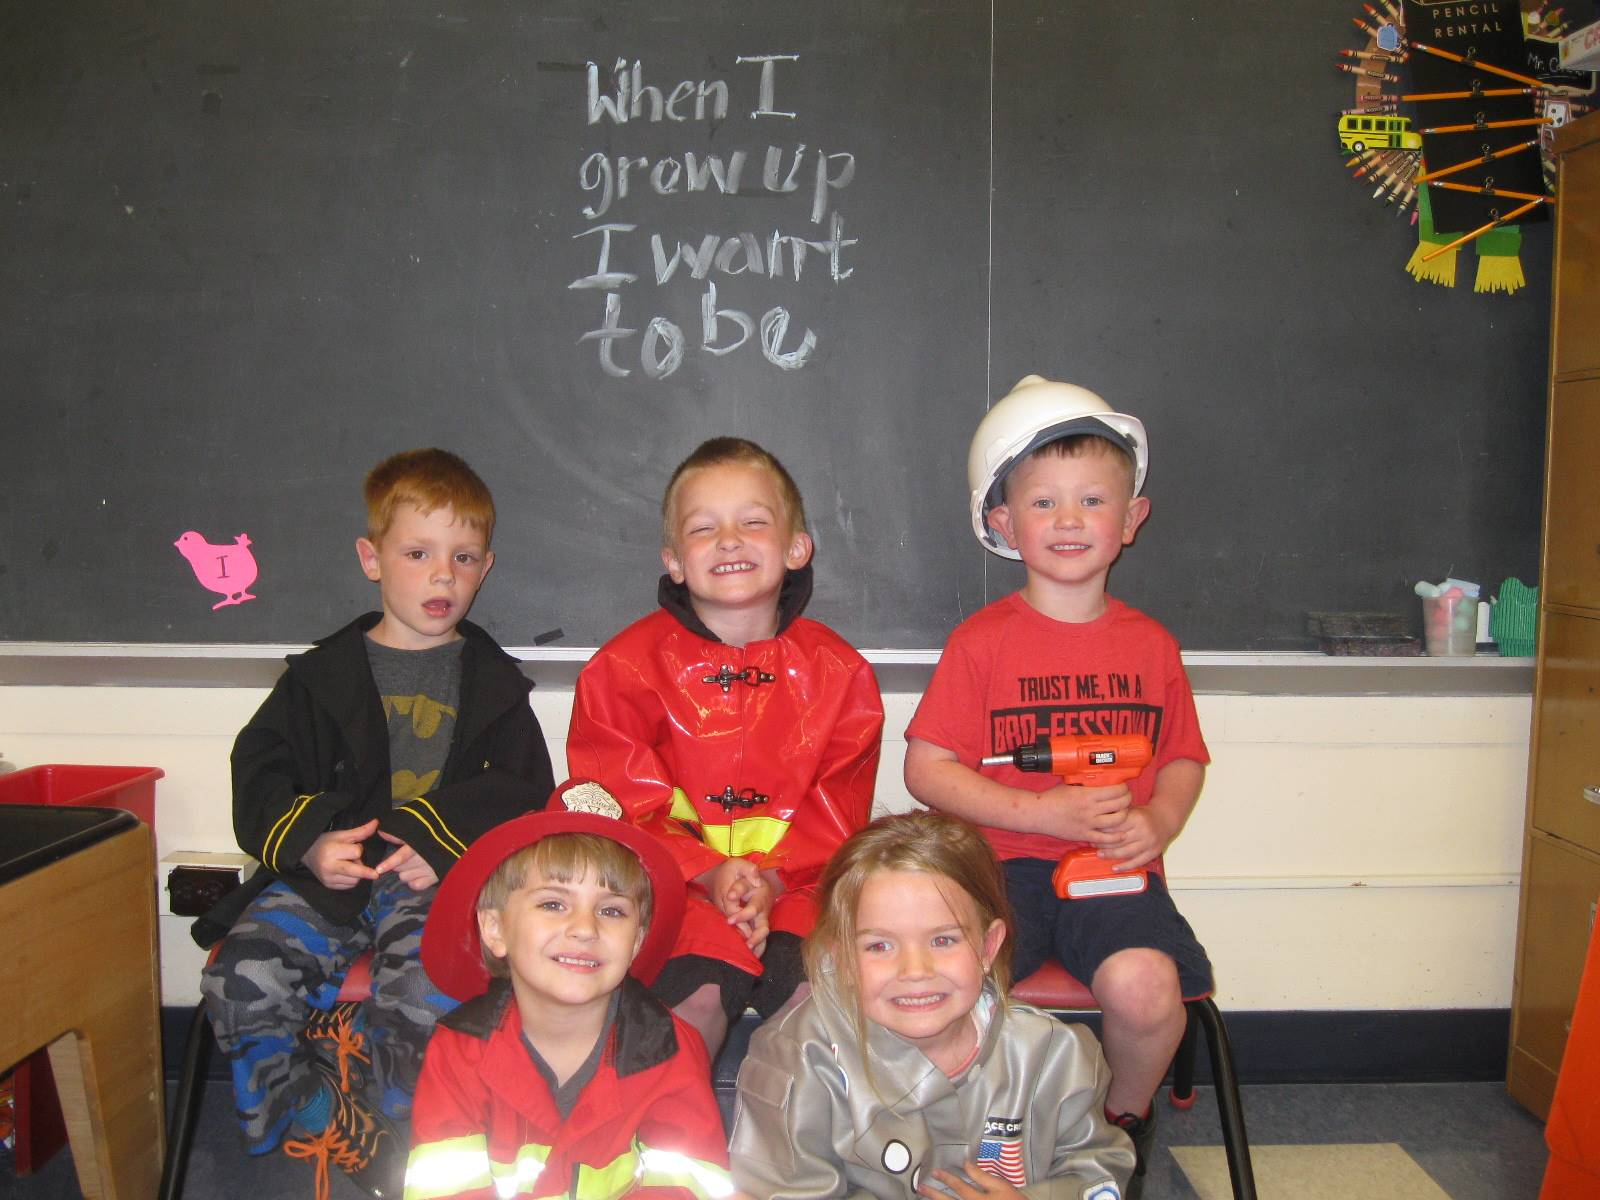 5 students dressed up as a Community Helper